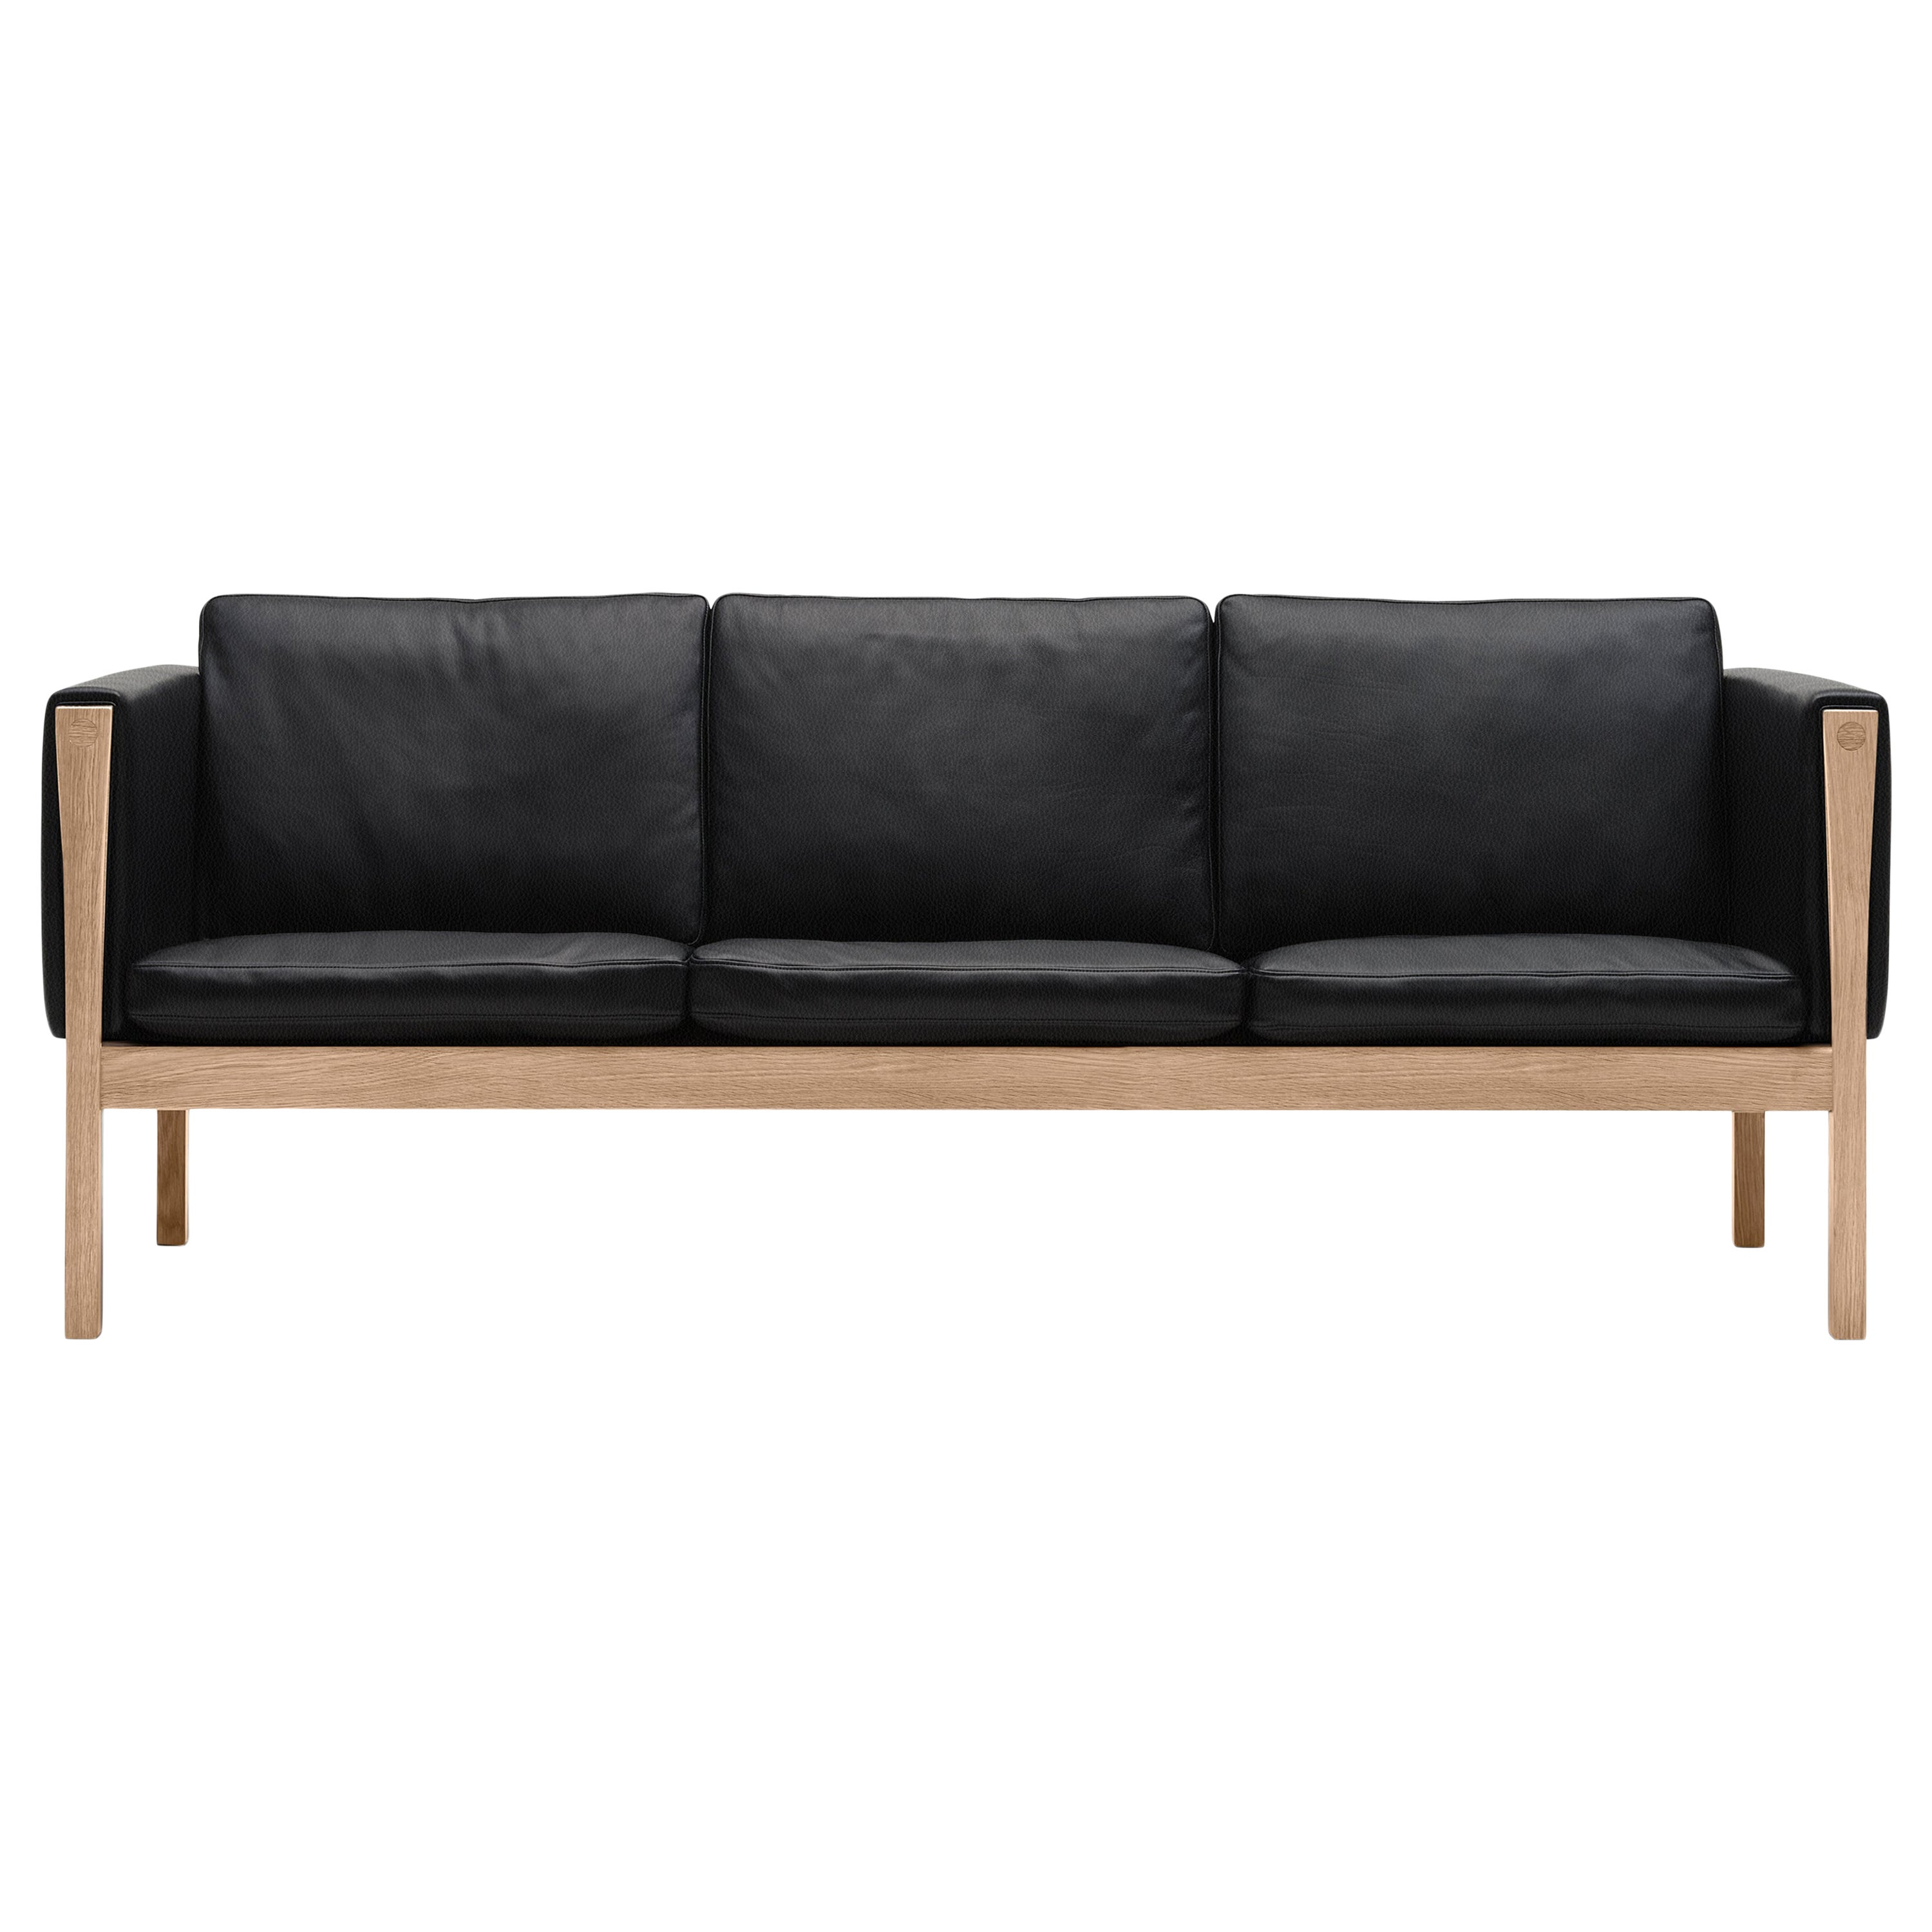 CH163 Sofa in Oiled Oak Frame with Leather Upholstery by Hans J. Wegner